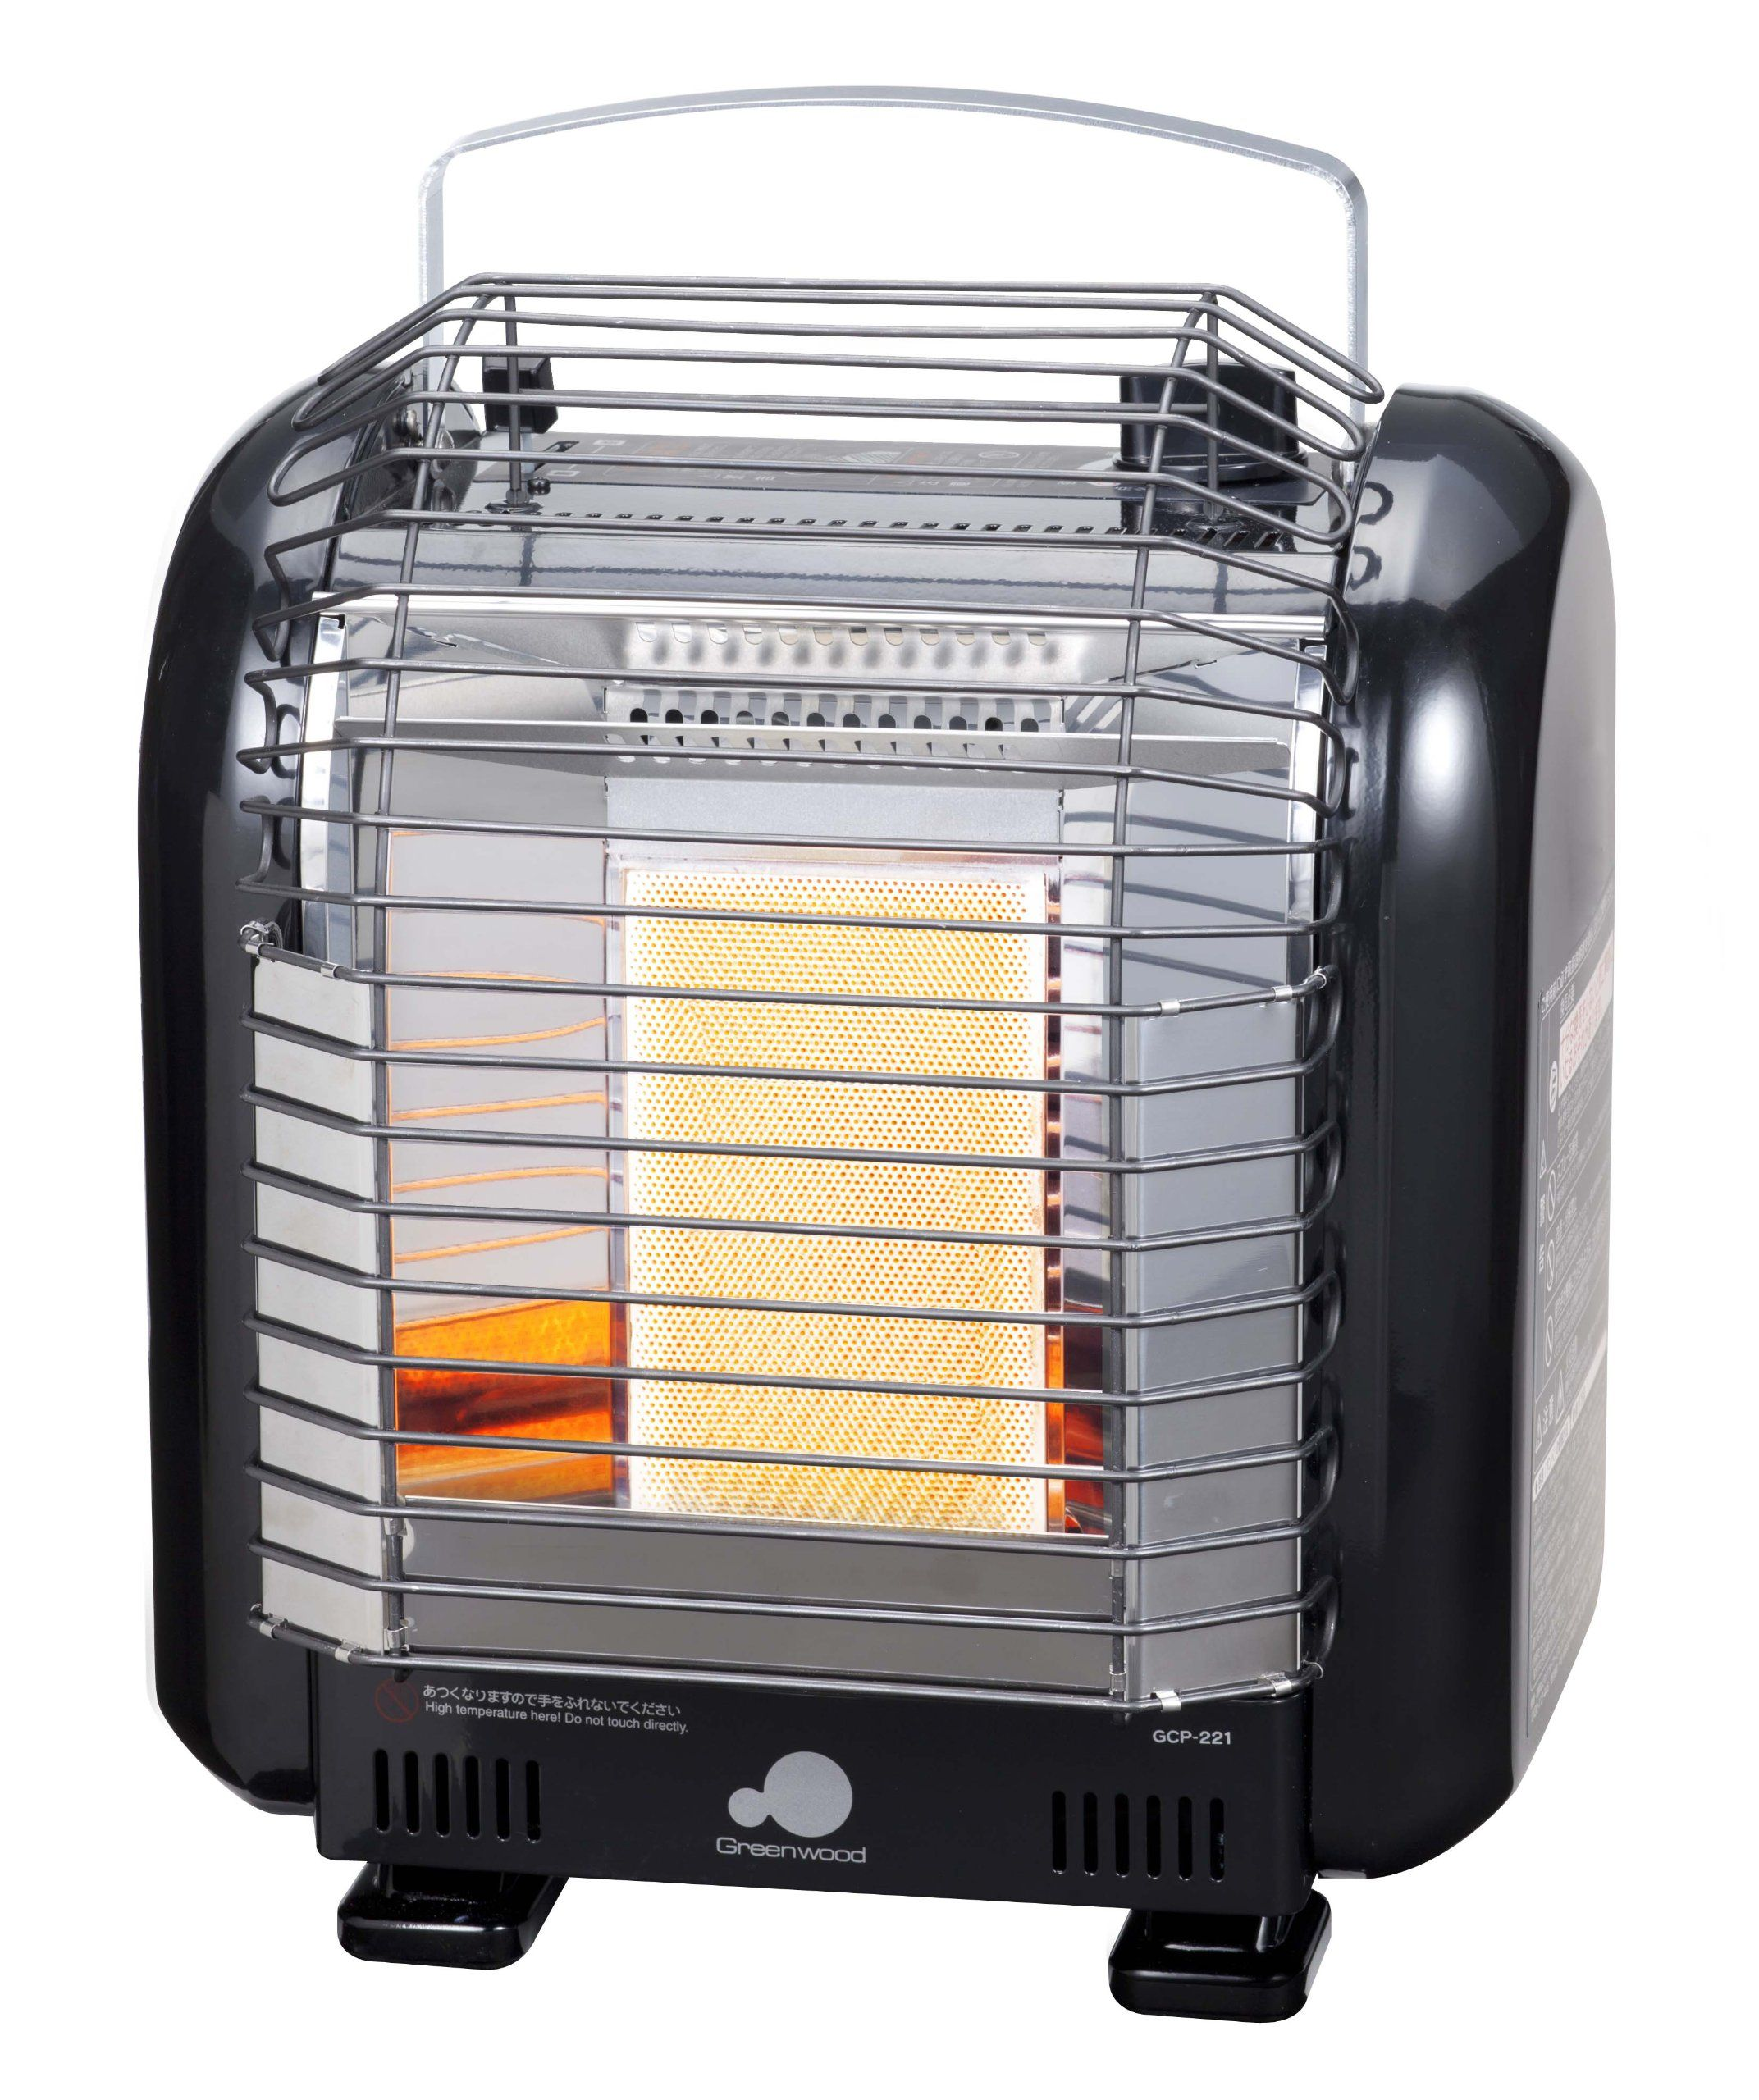 Greenwood Cassette Cylinder Type Portable Heater Indoor Use Gcp221 Black Read More At The Image Link This Is An Affiliat Portable Heater Heater Greenwood